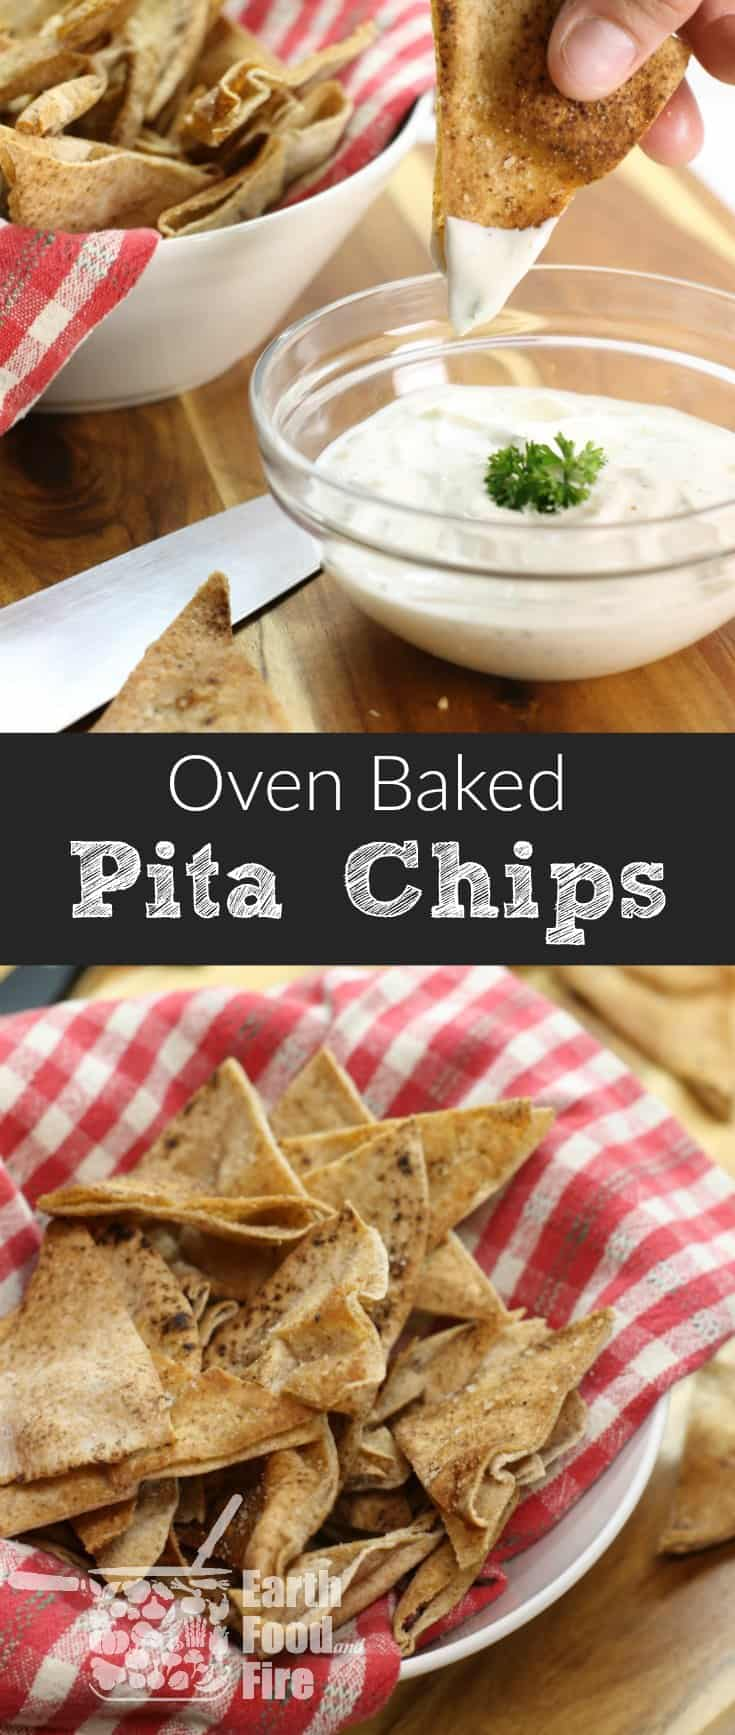 Homemade pita chips are an easy and healthy snack great for after school or simply when a chip craving hits. Serve with hummus or homemade salsa! #pita #homemadchips #baked #afterschoolsnack